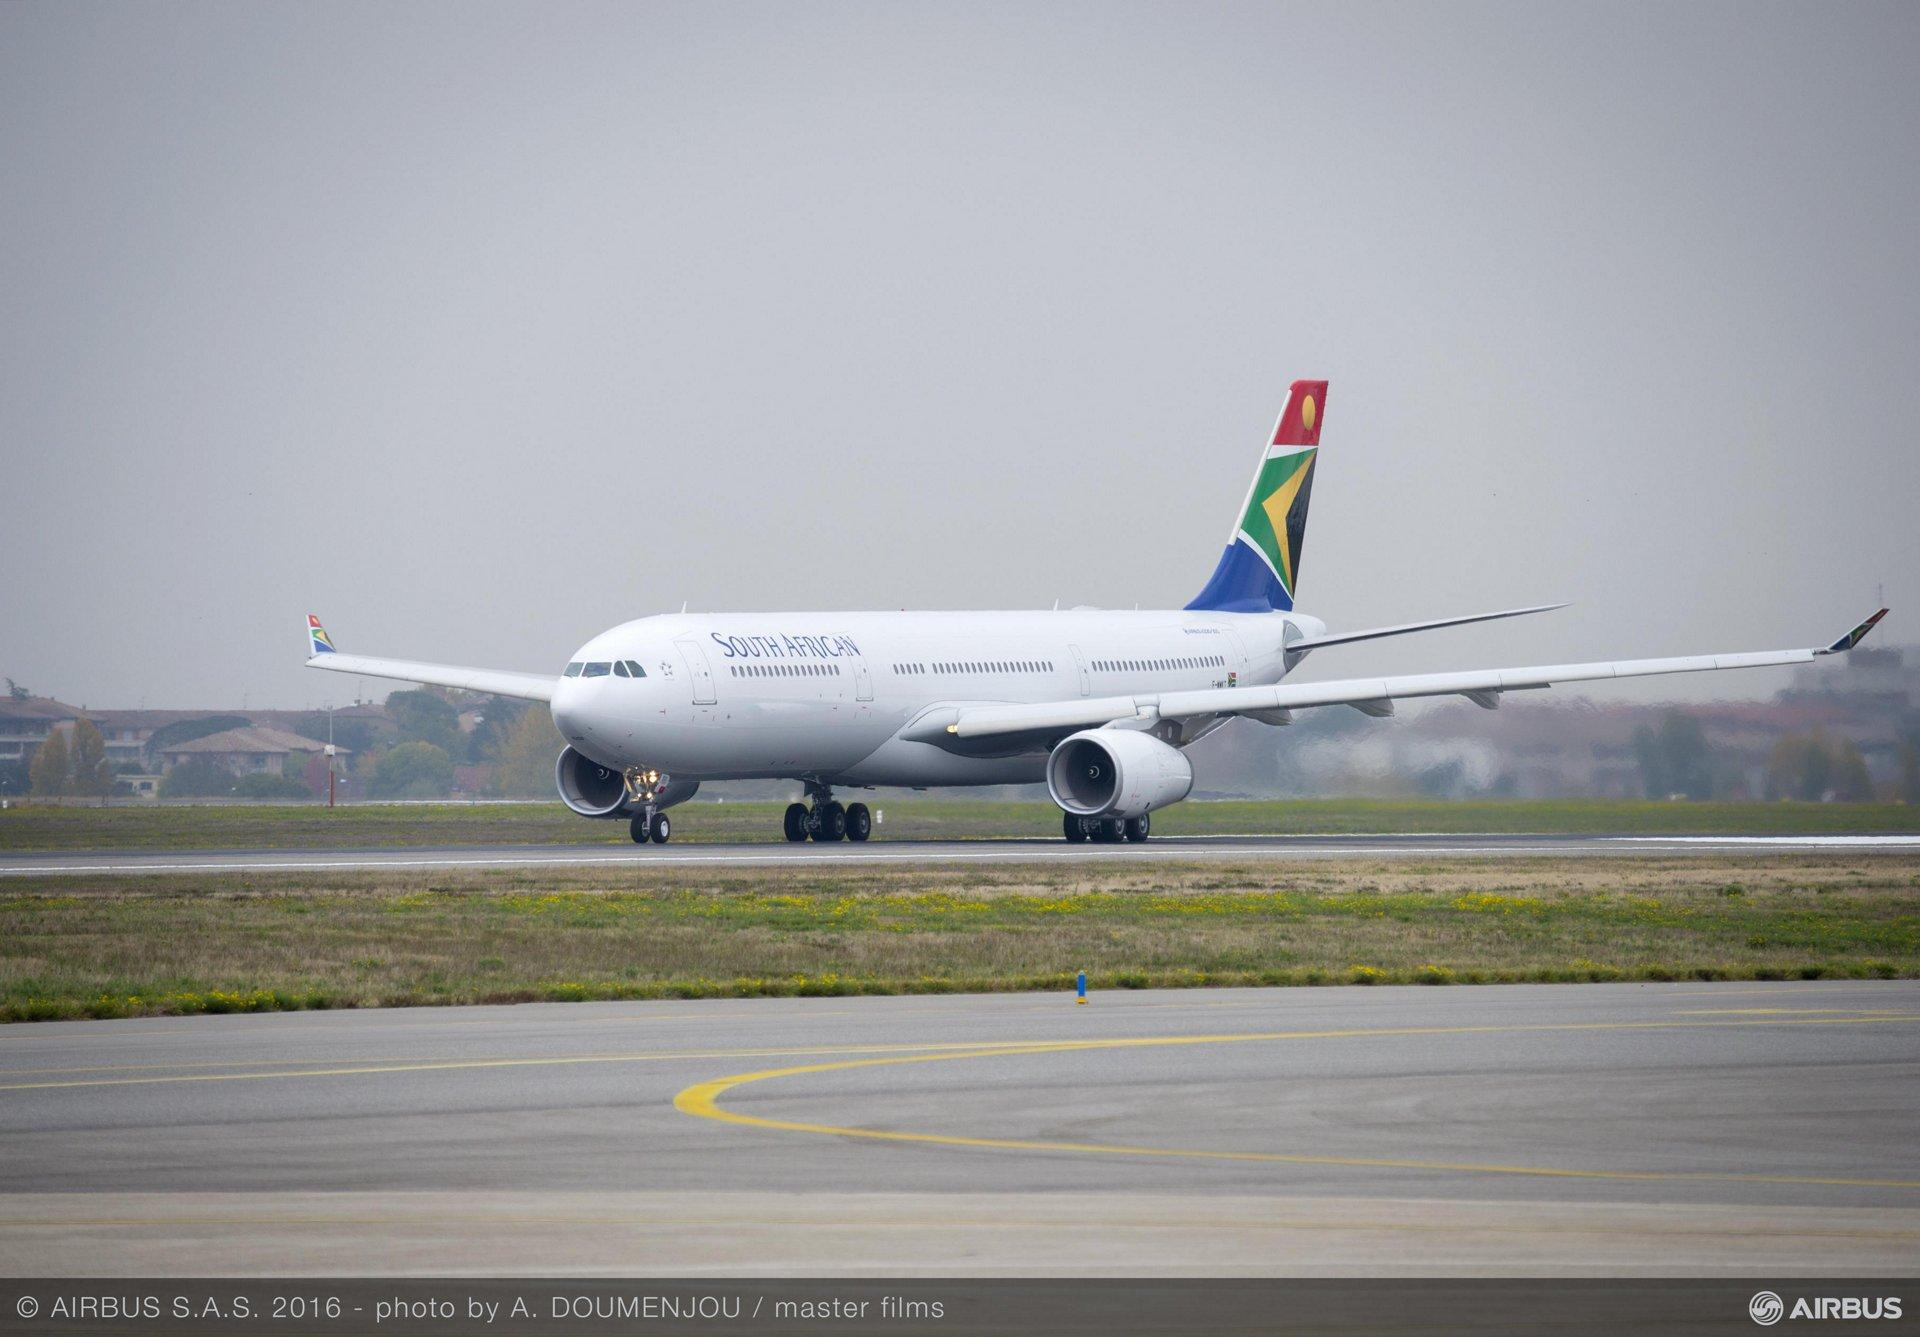 South African Airways Airbus A330-300